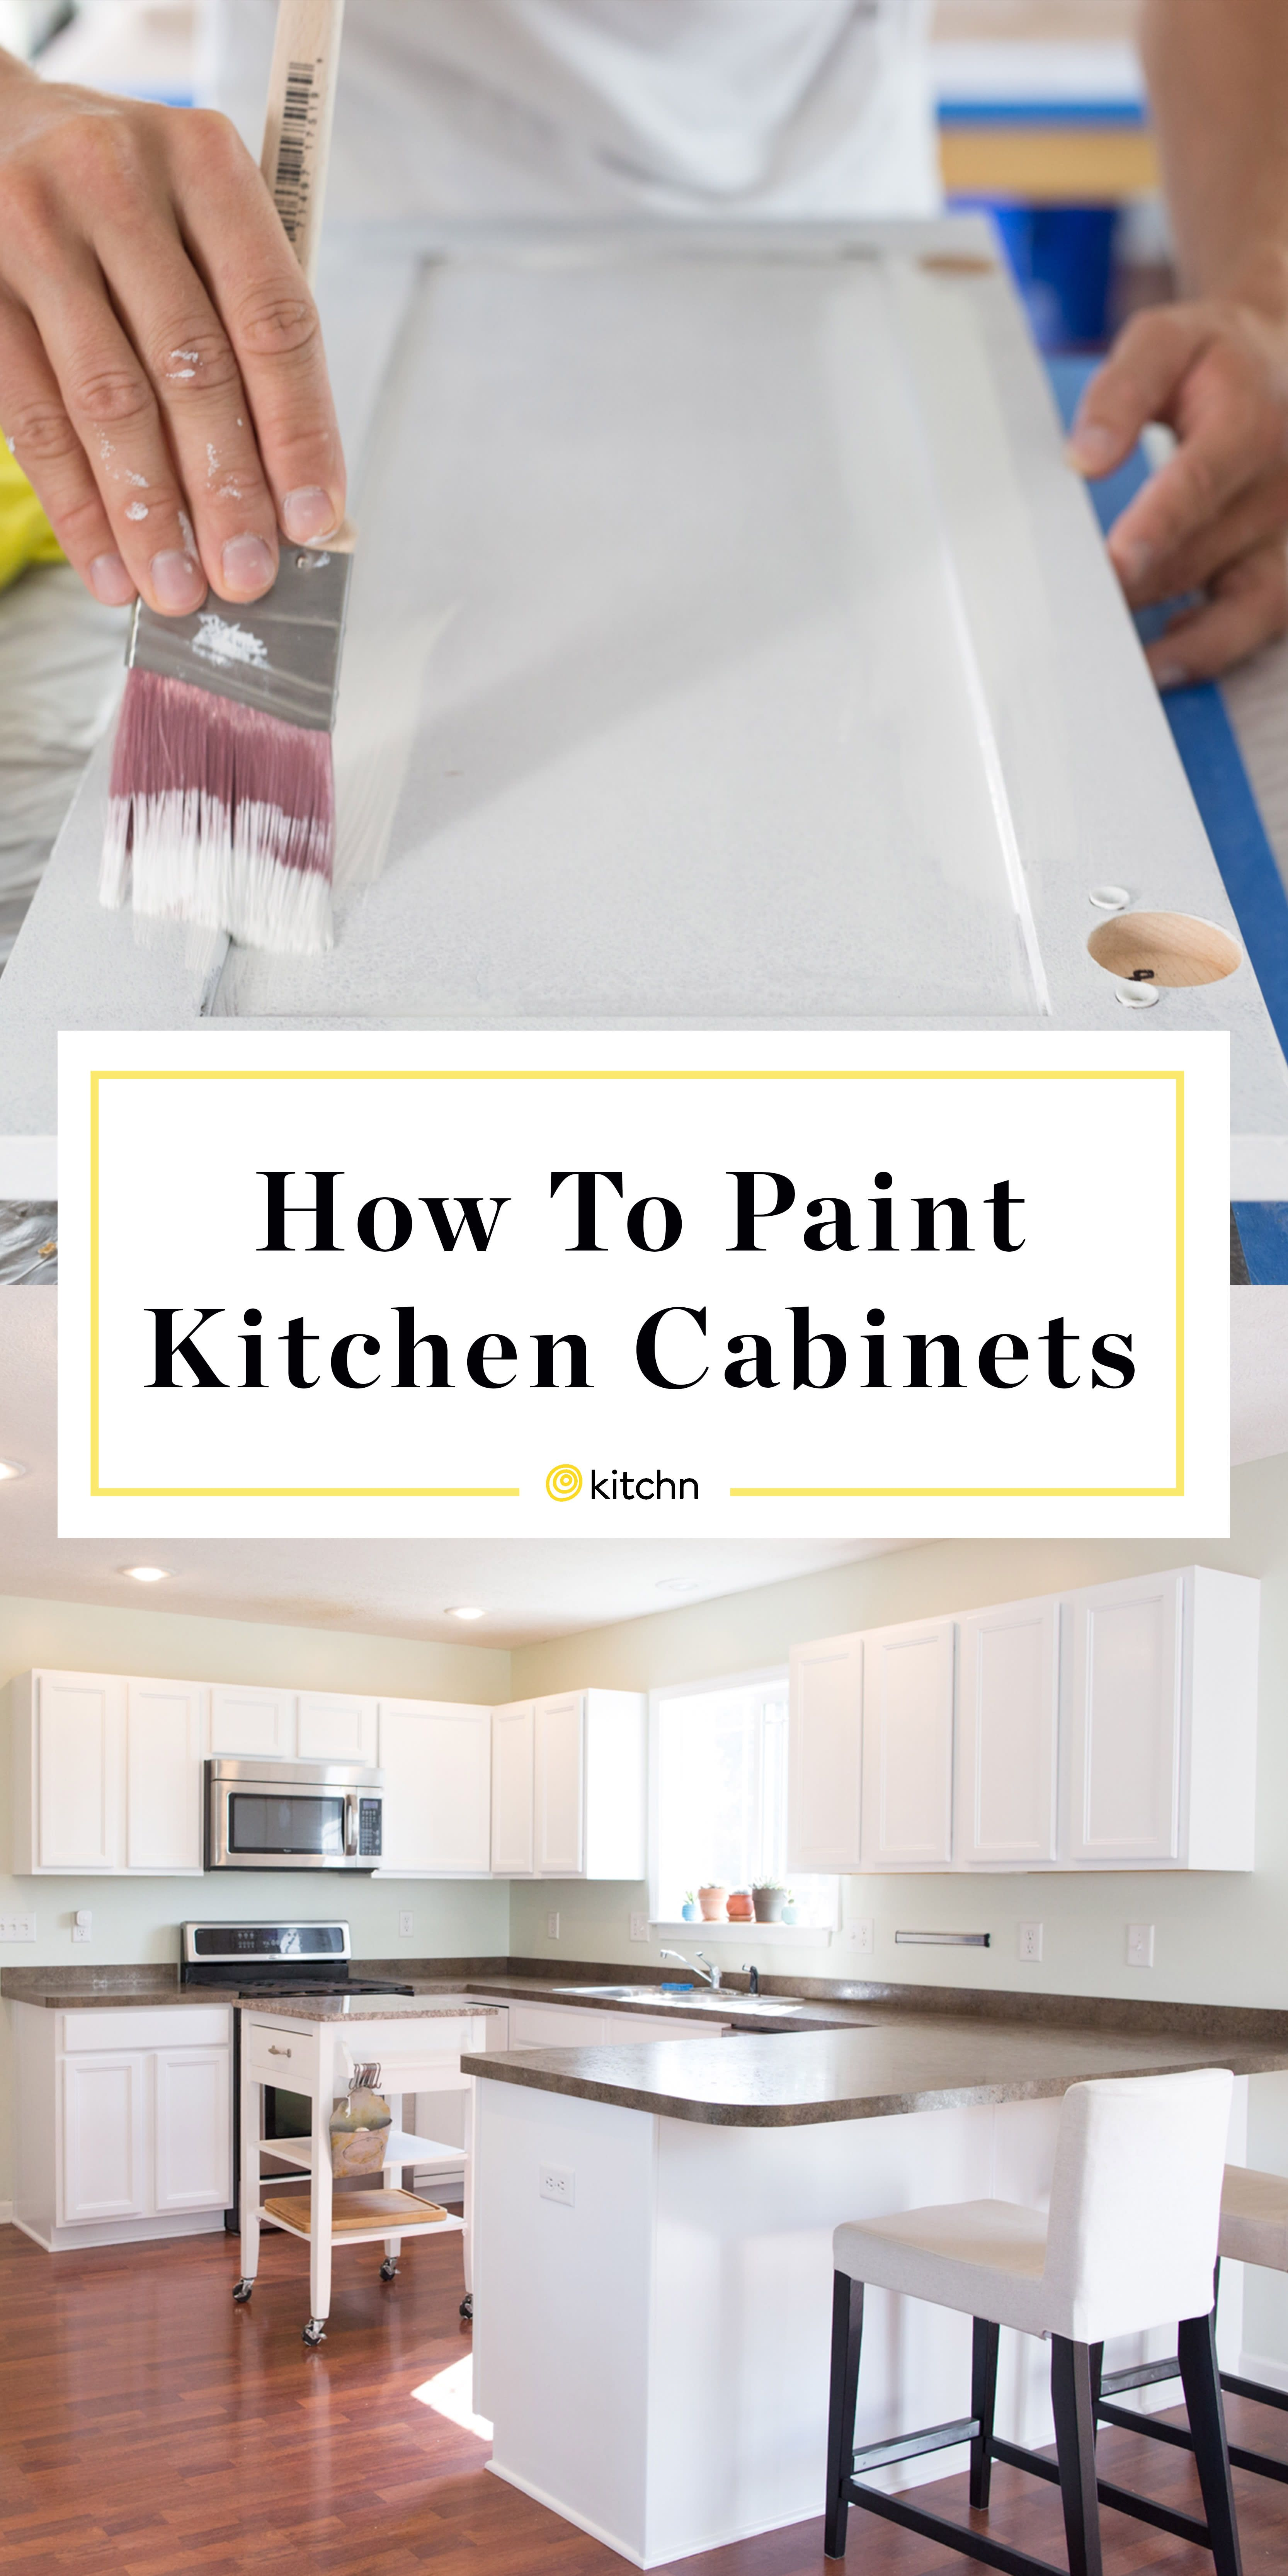 How To Paint Your Kitchen Cabinets So It Looks Like You Totally Replaced Them Painting Kitchen Cabinets White Painting Kitchen Cabinets Diy Kitchen Cabinets